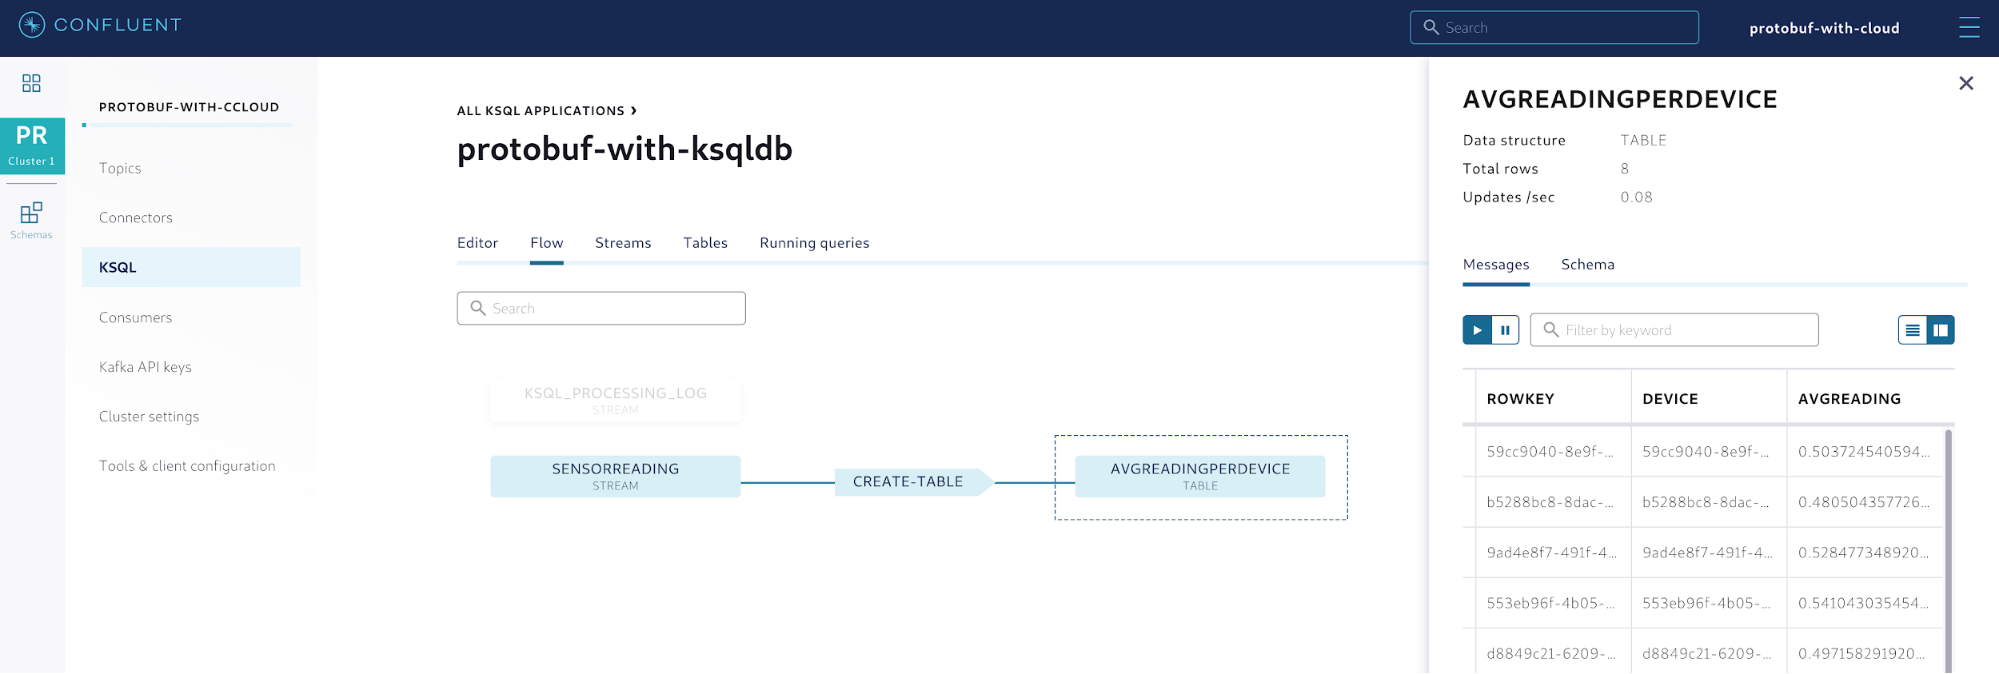 Flow of the events easily shown in Confluent Cloud